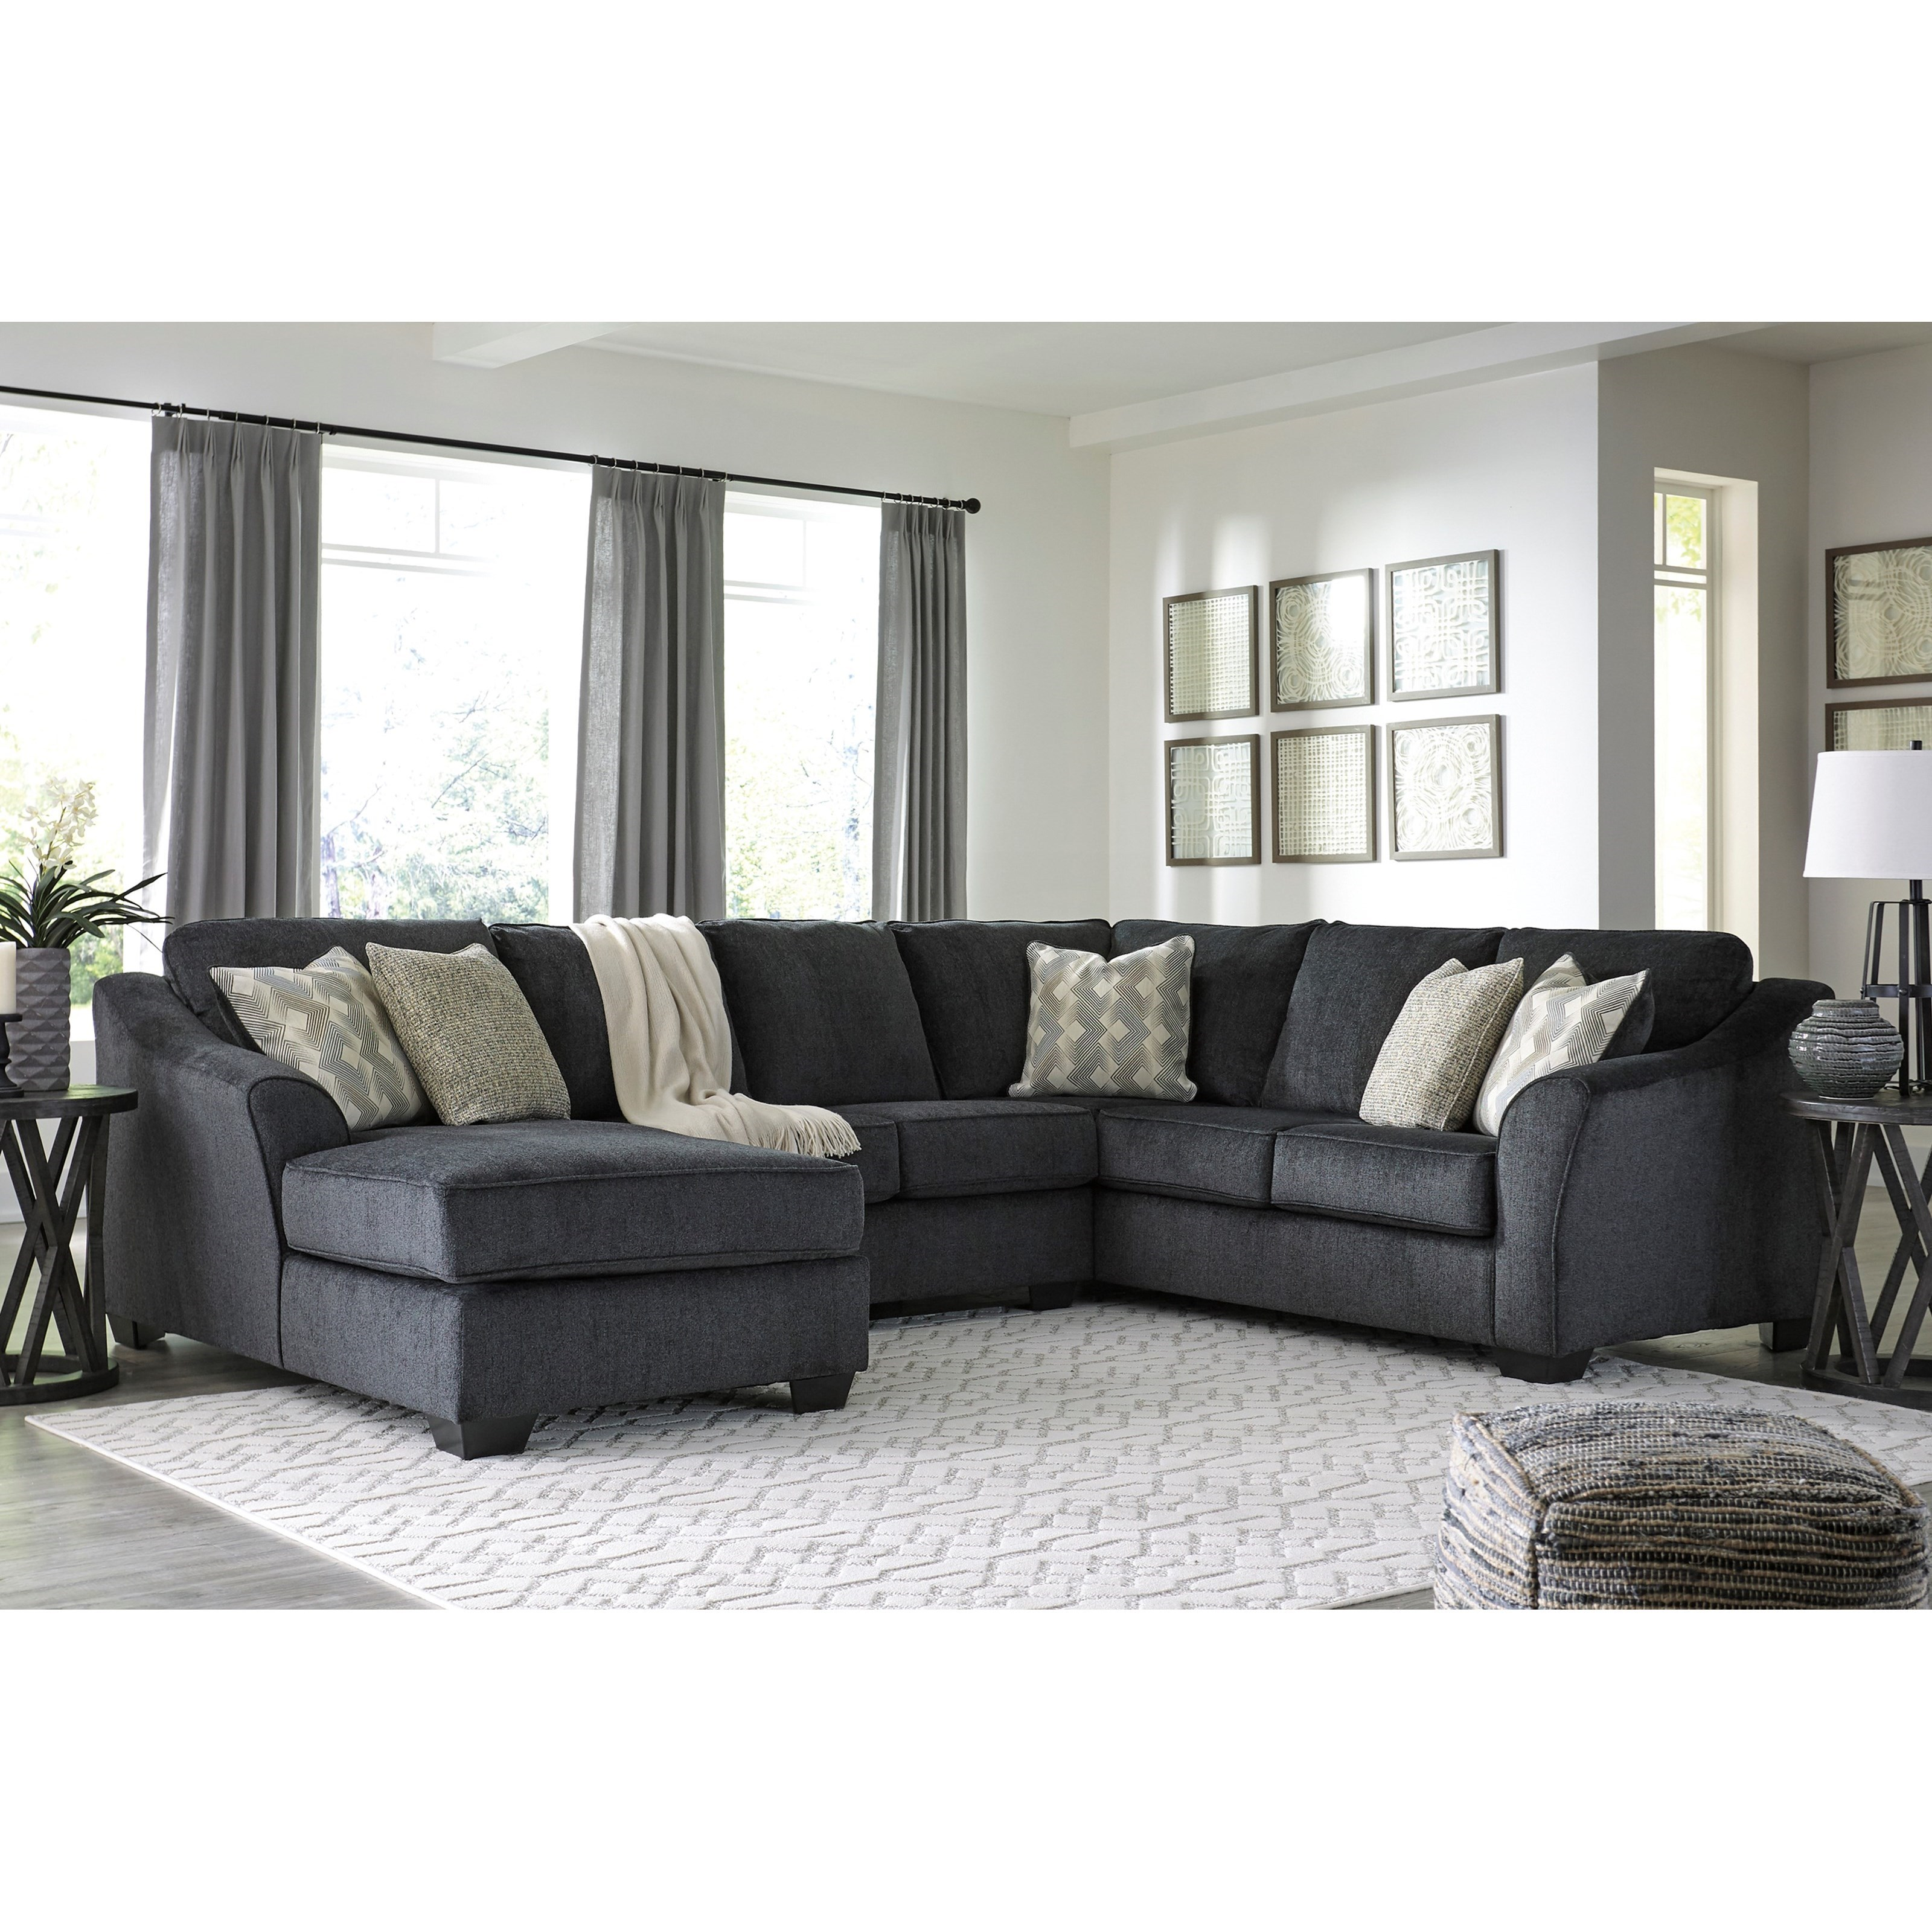 Furniture Fair North Carolina: Signature Design By Ashley Eltmann 3 Piece Sectional With